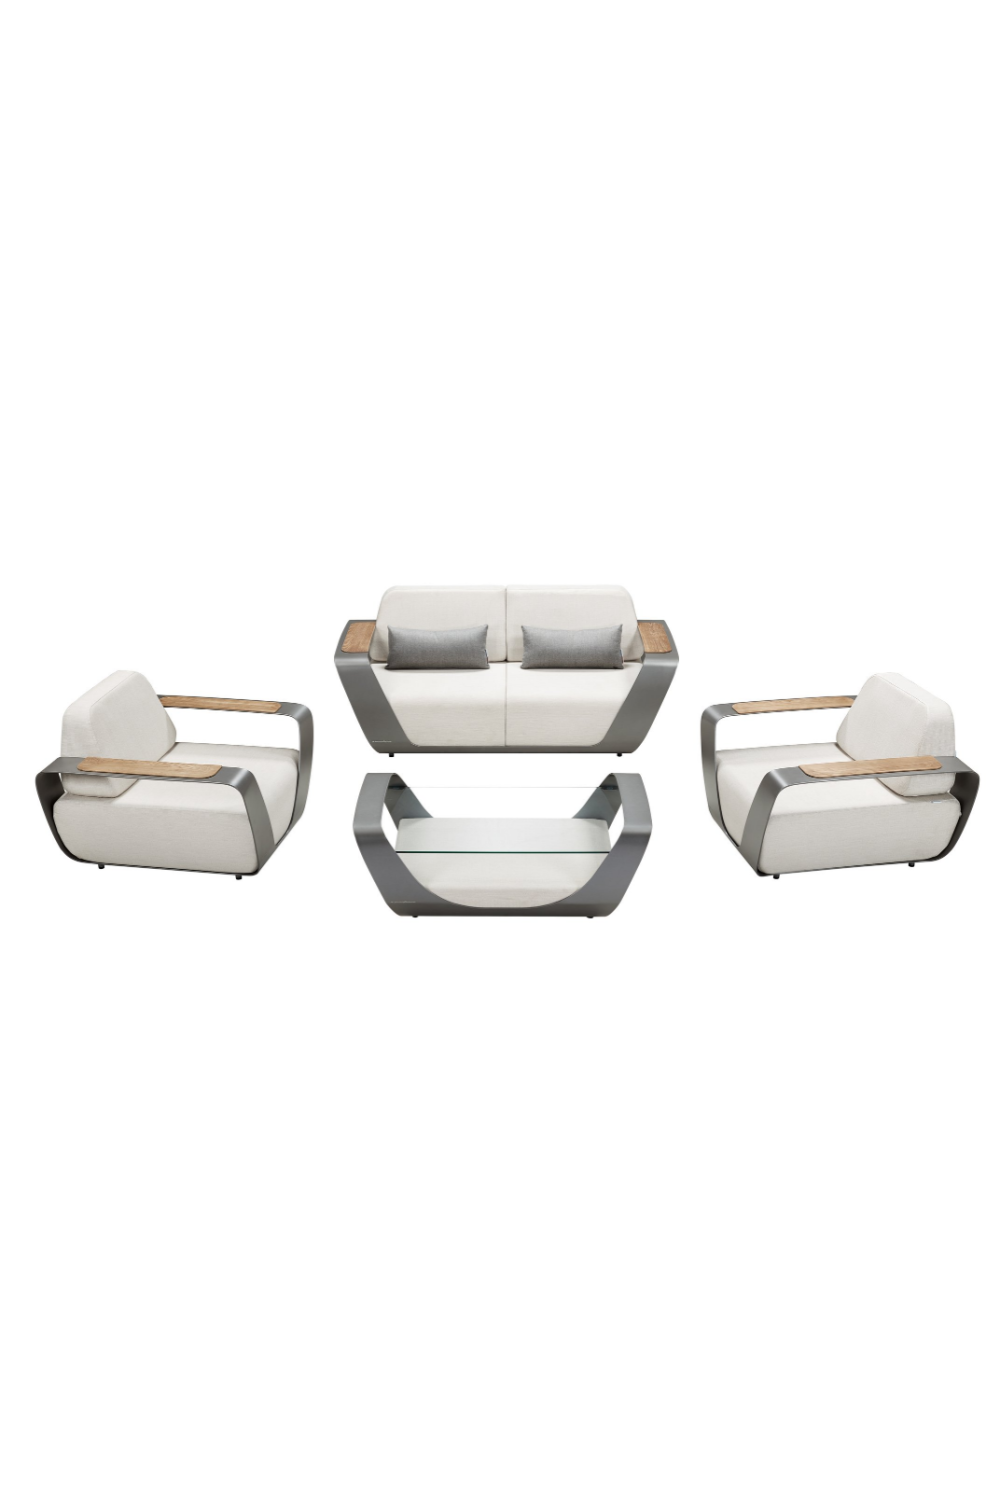 2-Seater Outdoor Lounge Set | Higold Pininfarina - White | OROA